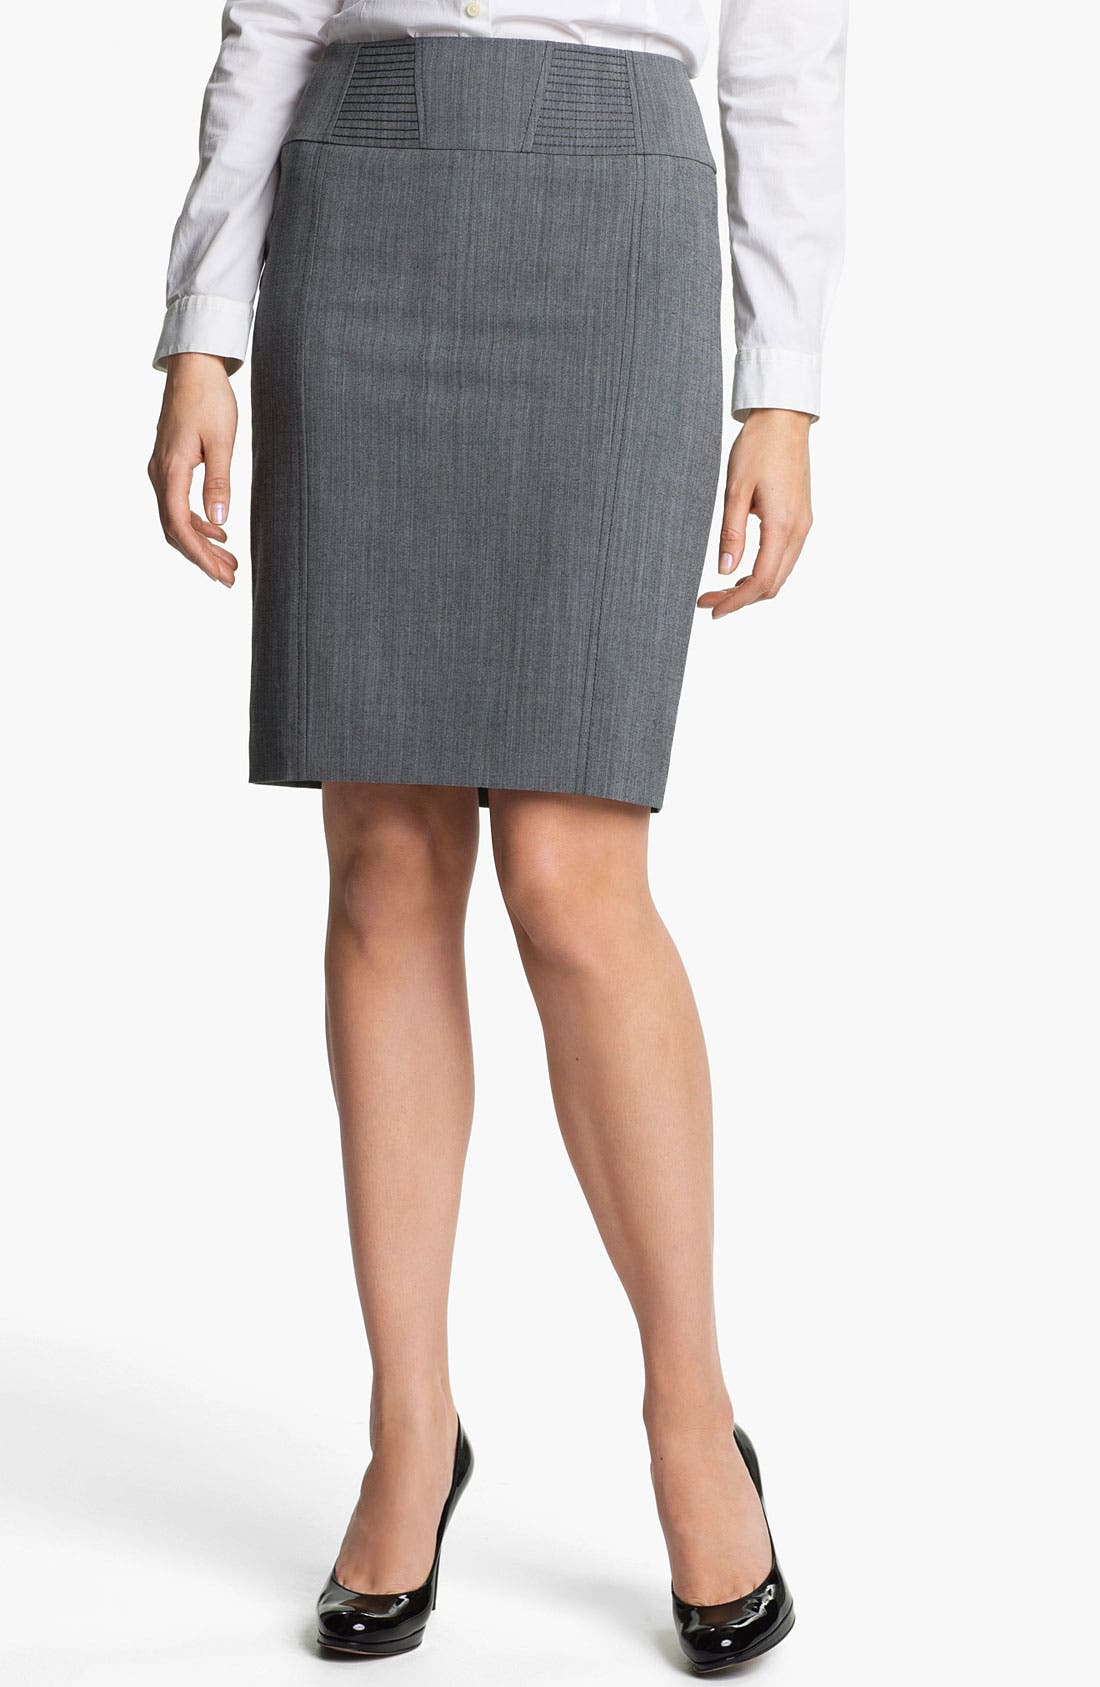 Alternate Image 1 Selected - Halogen® Cross Dye Pencil Skirt